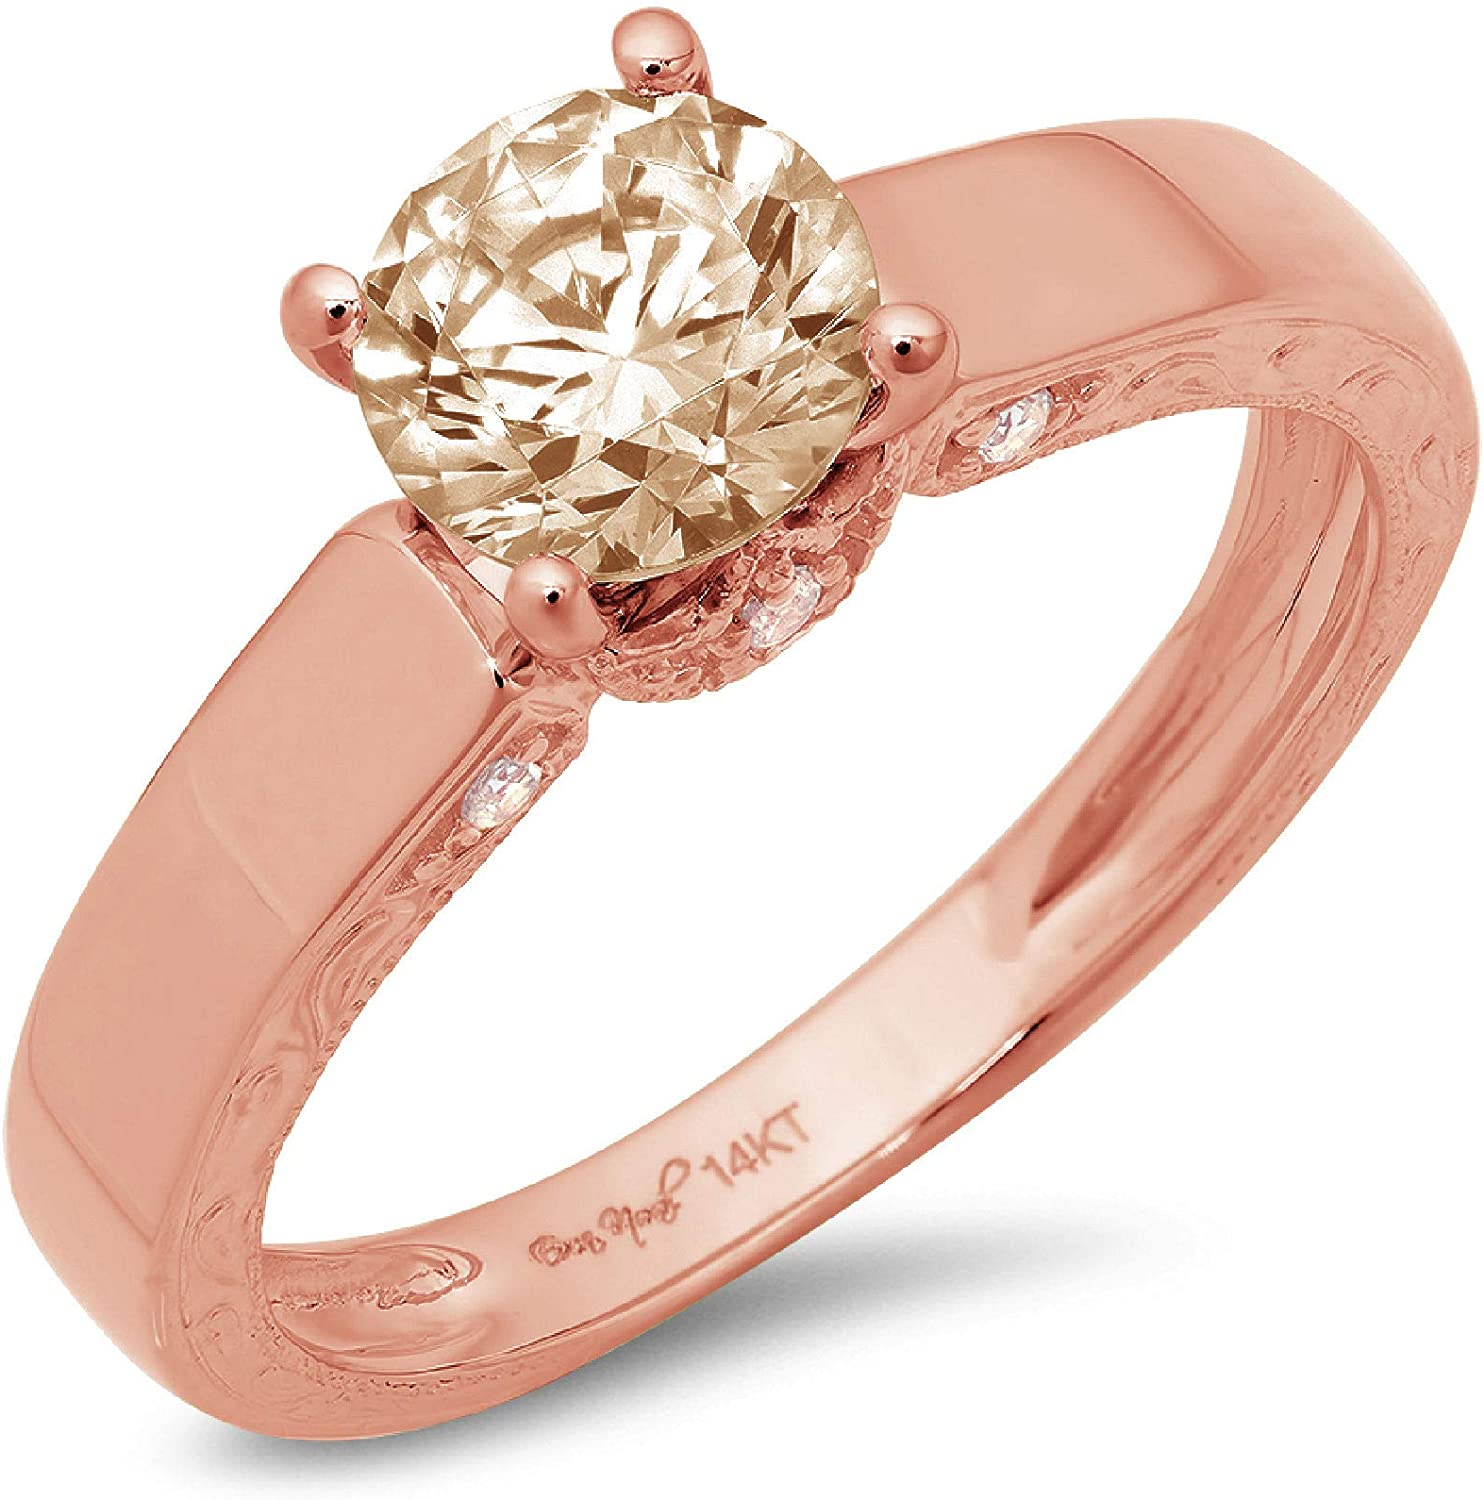 1.67ct Brilliant Round Cut Solitaire Brown Champagne Simulated Diamond CZ VVS1 Designer Modern Statement with accent Ring Real Solid 14k Rose Gold Clara Pucci